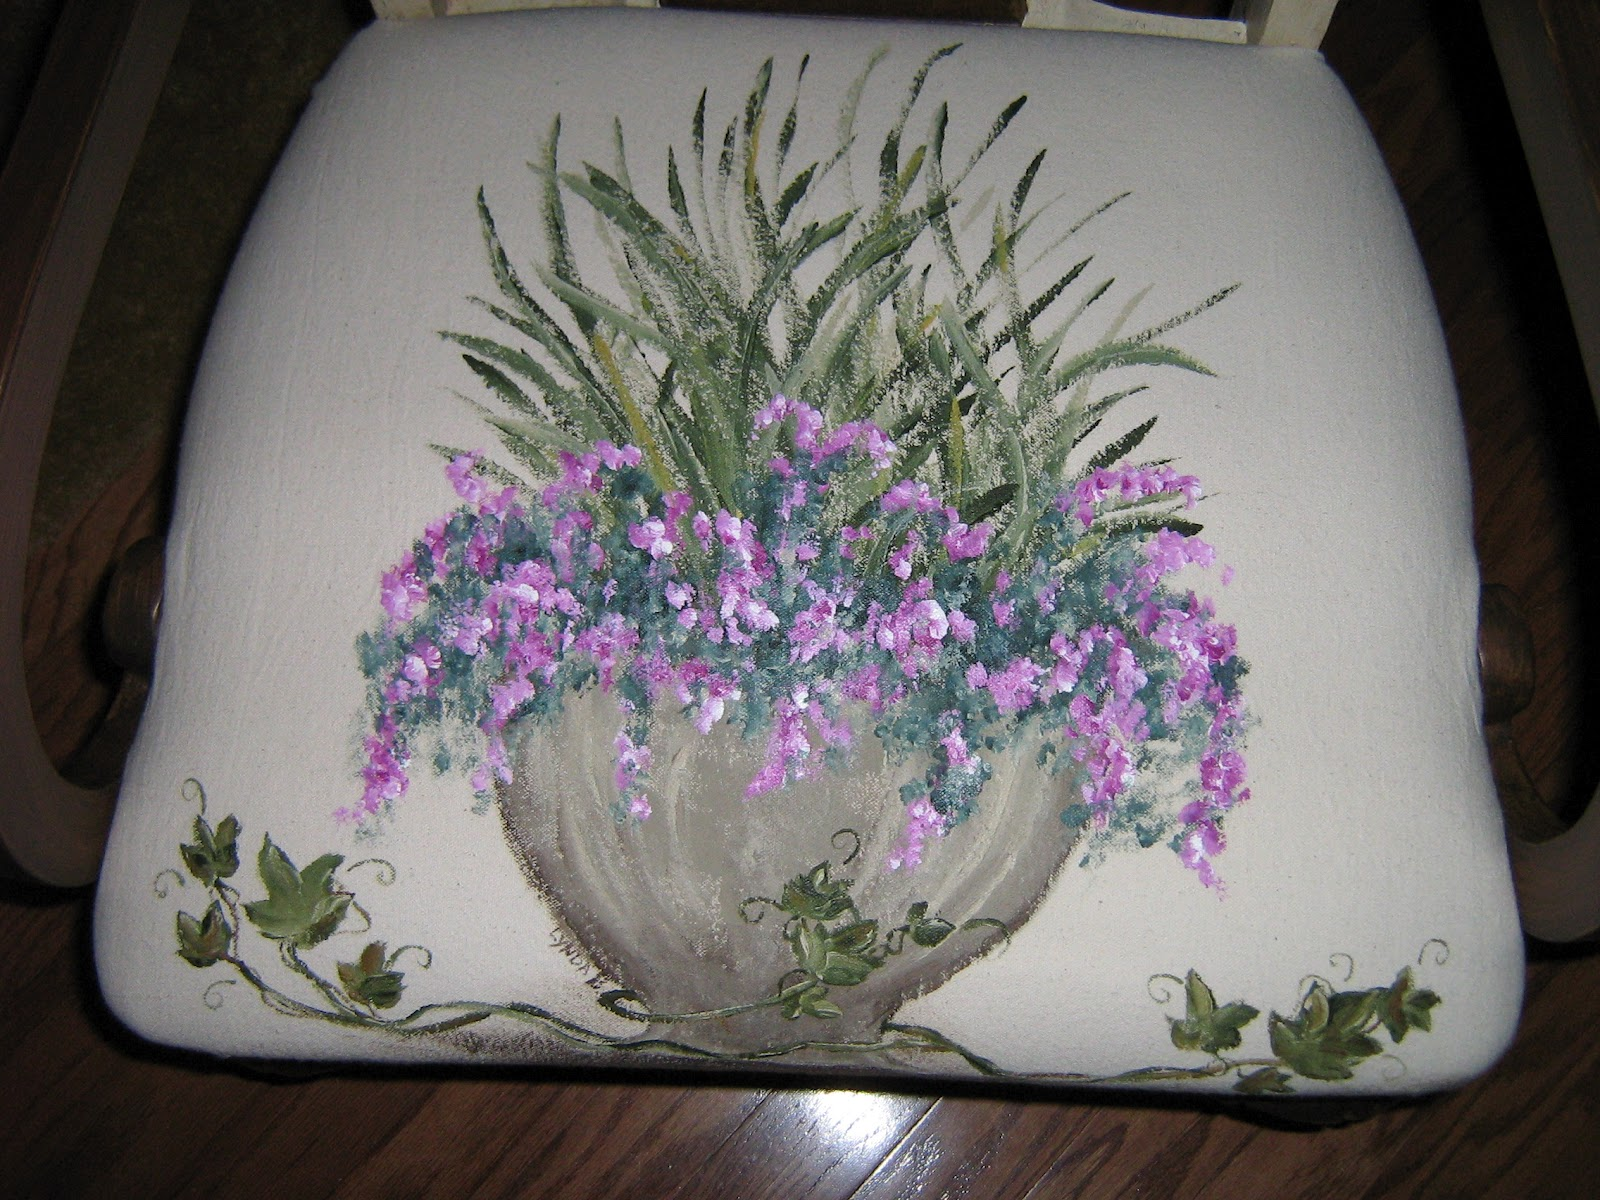 HAND PAINTED CHAIR SEAT COVERS TUTORIAL PAINTING ON CANVAS CLOTH